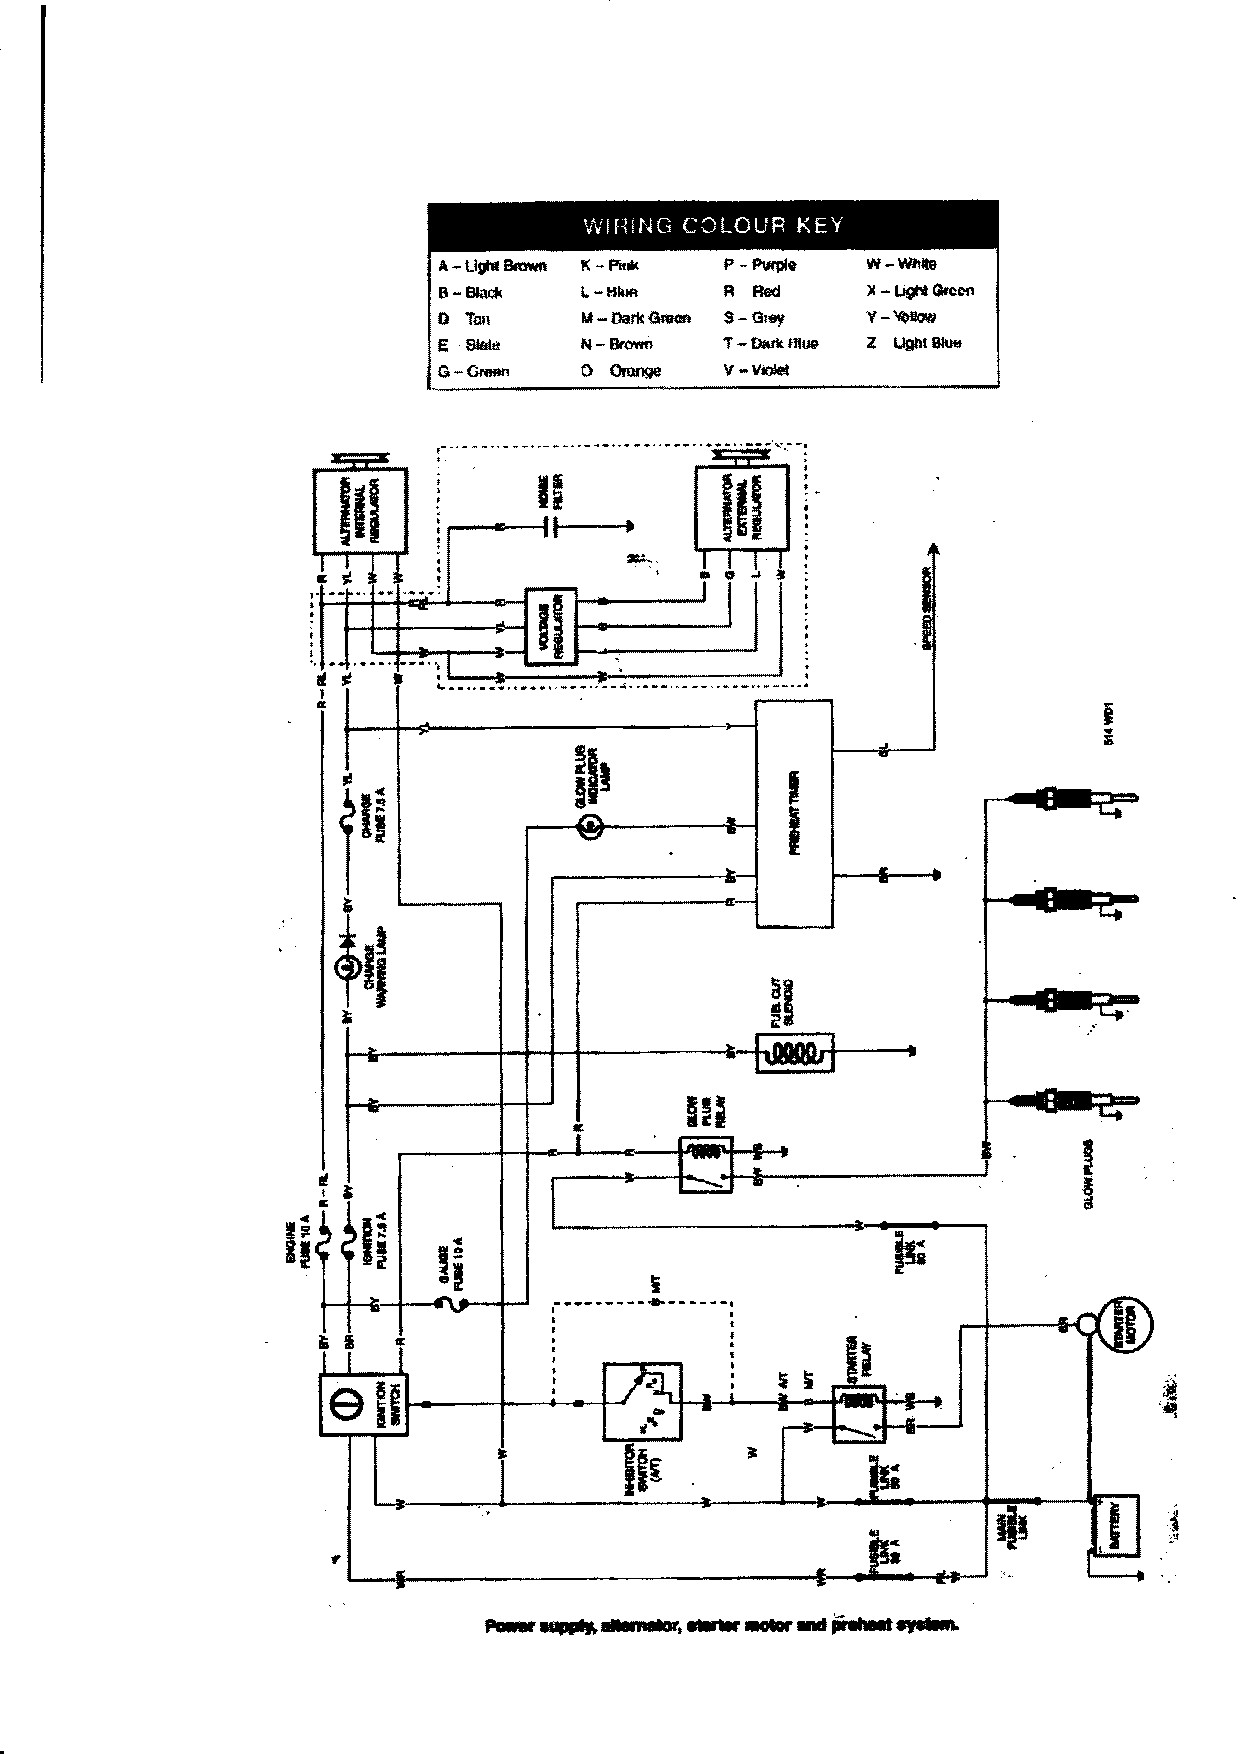 toyota ln130 wiring diagram - wiring diagram nice-overview -  nice-overview.lasuiteclub.it  lasuiteclub.it